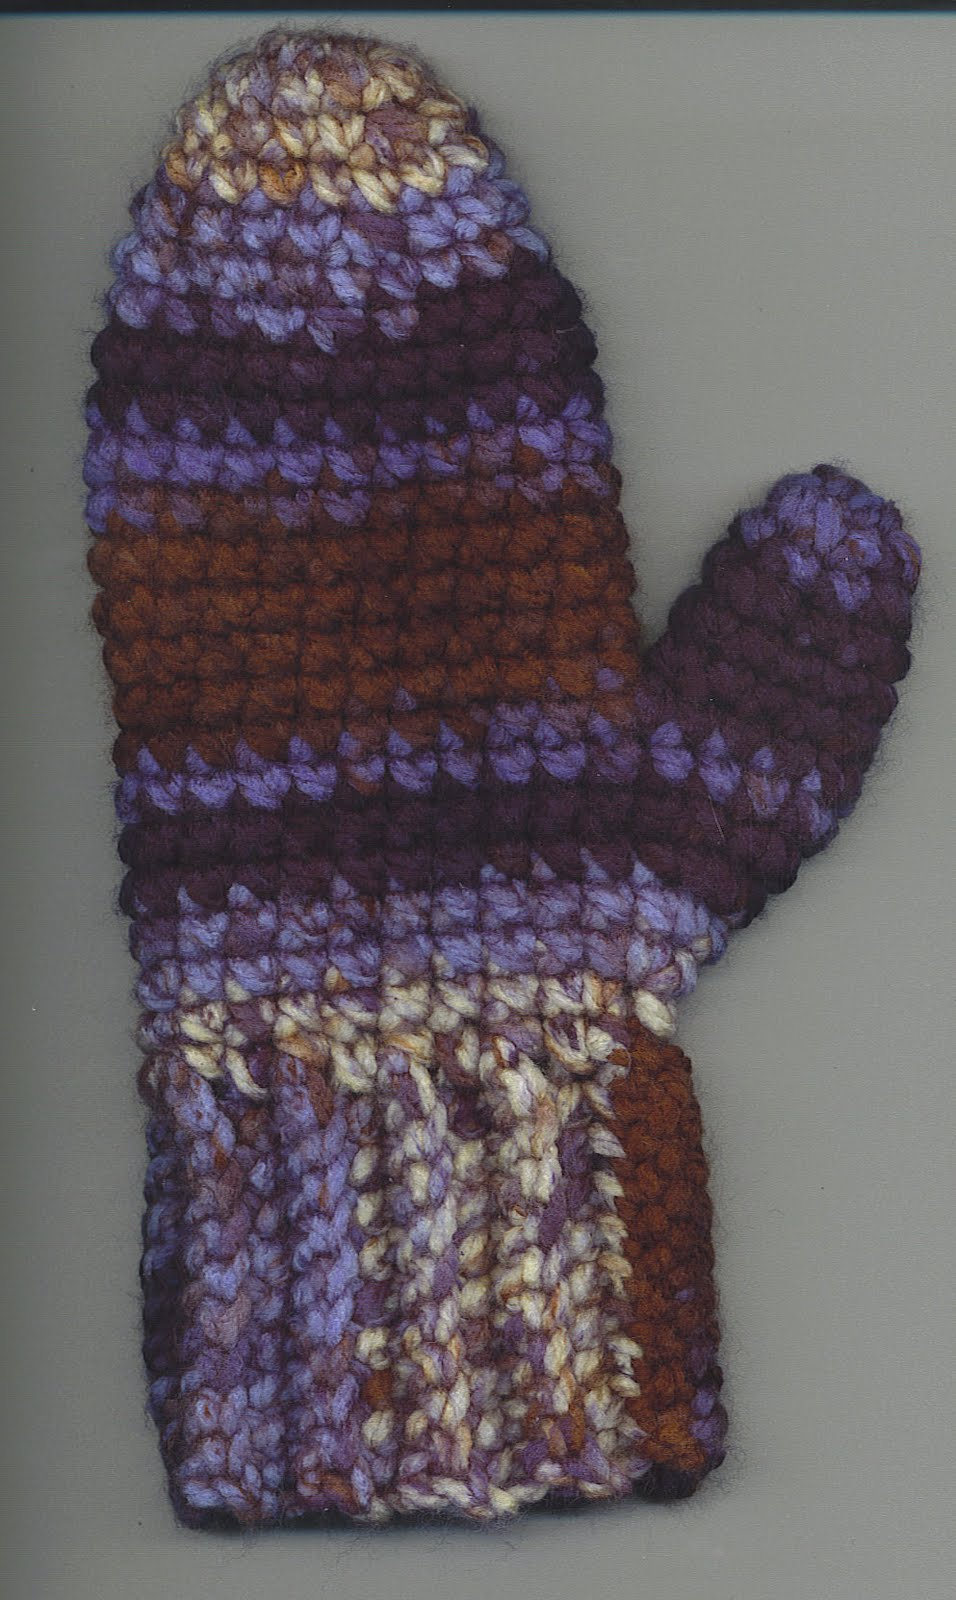 Crochet Mitten Patterns For Beginners : Treasures Made From Yarn: Crocheted Mitten Pattern